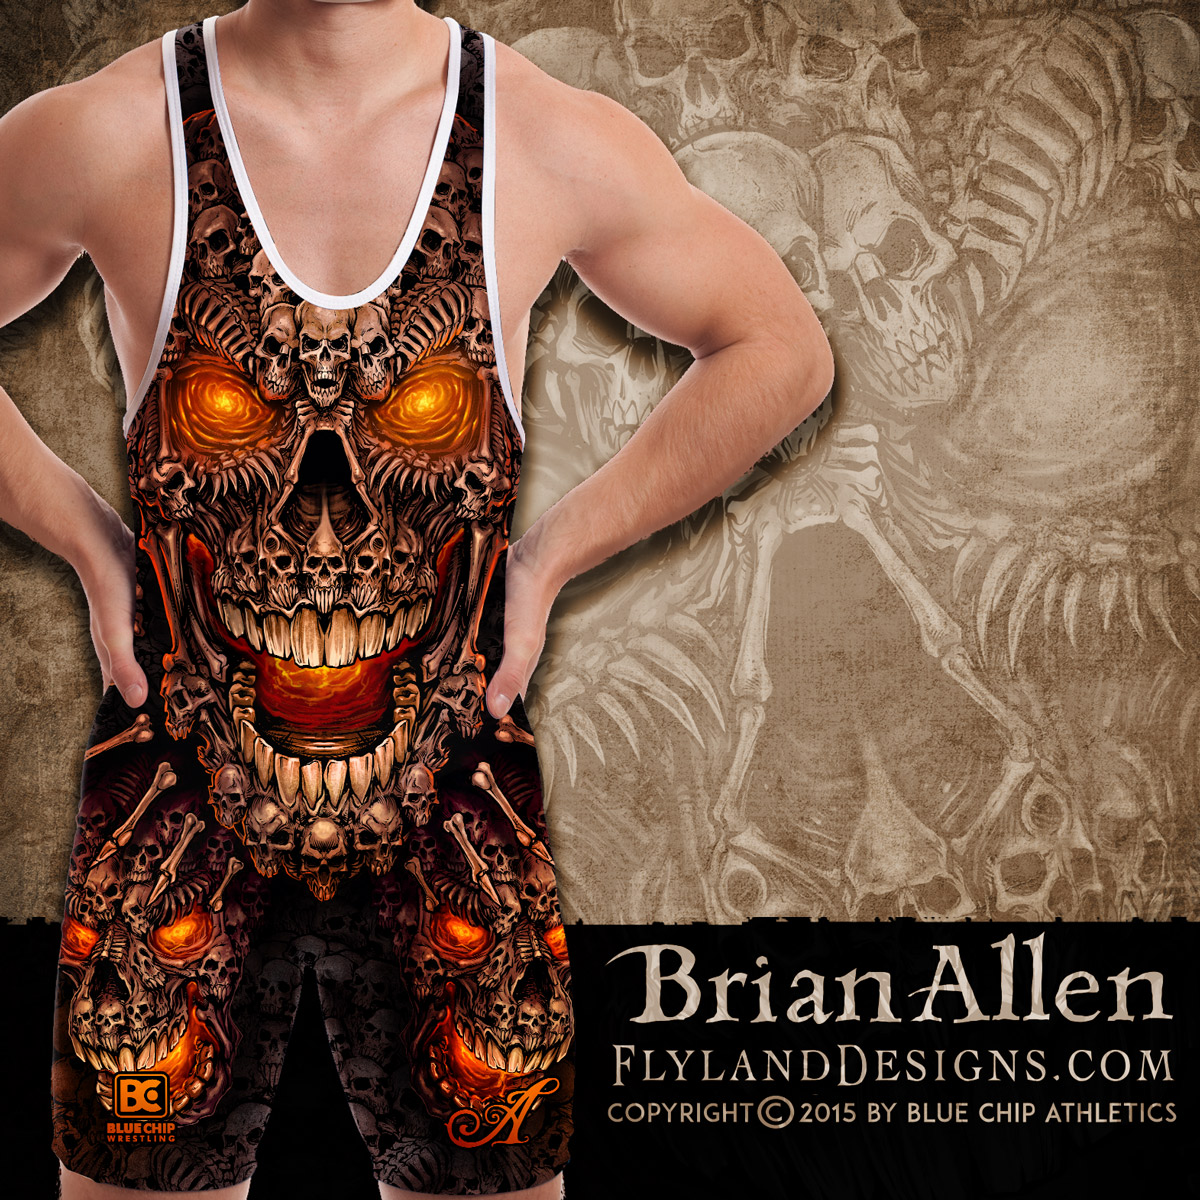 Giant skull made of smaller skulls illustration for dye-sublimated wrestling singlets.